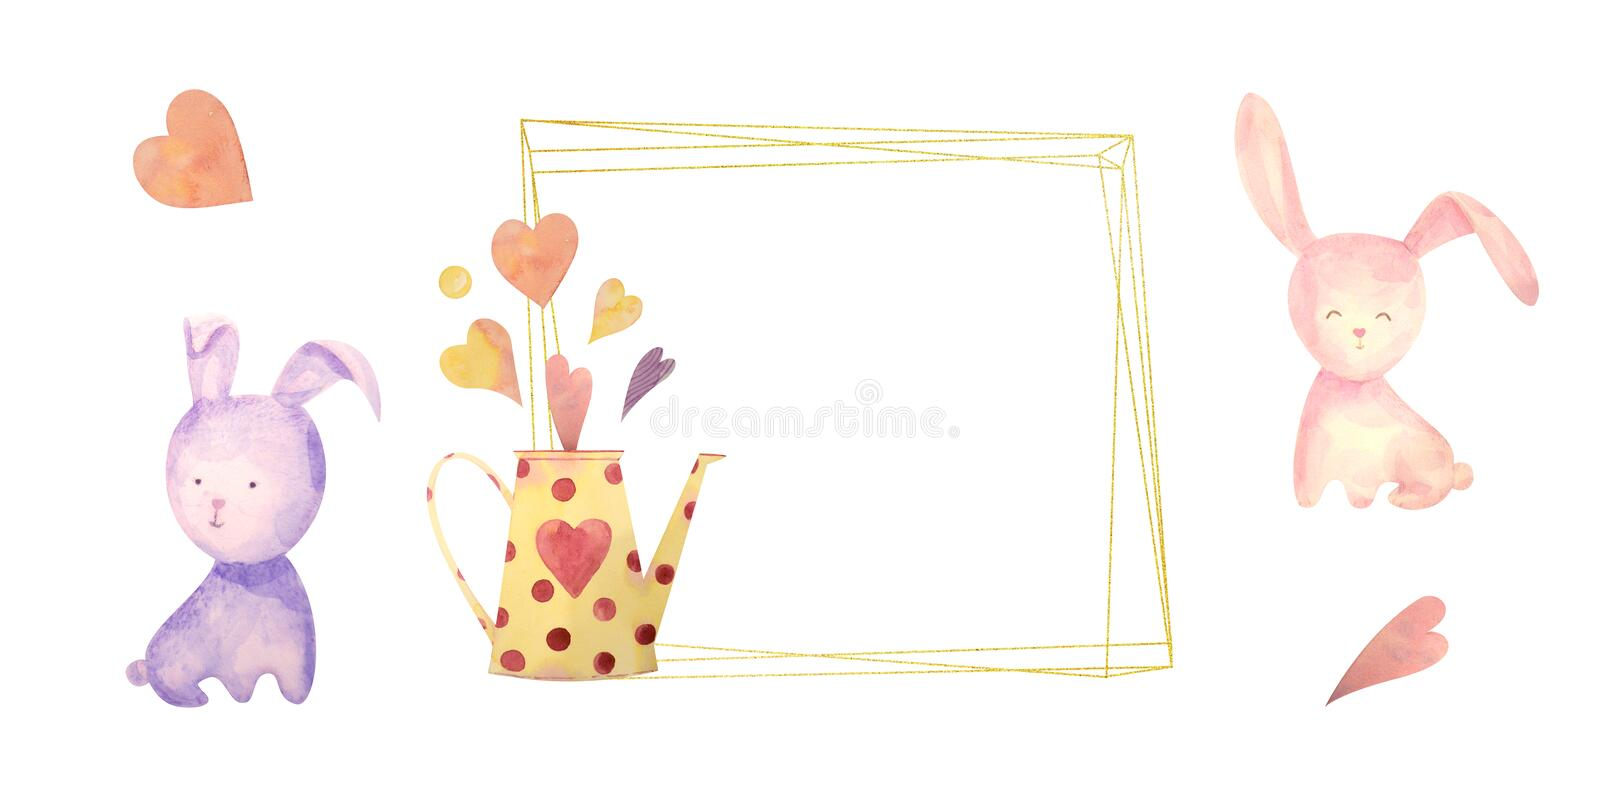 Watercolor drawn set with elements of happy easter. Frame, rabbit, eggs, isolated on white. for greeting card or logo stock illustration